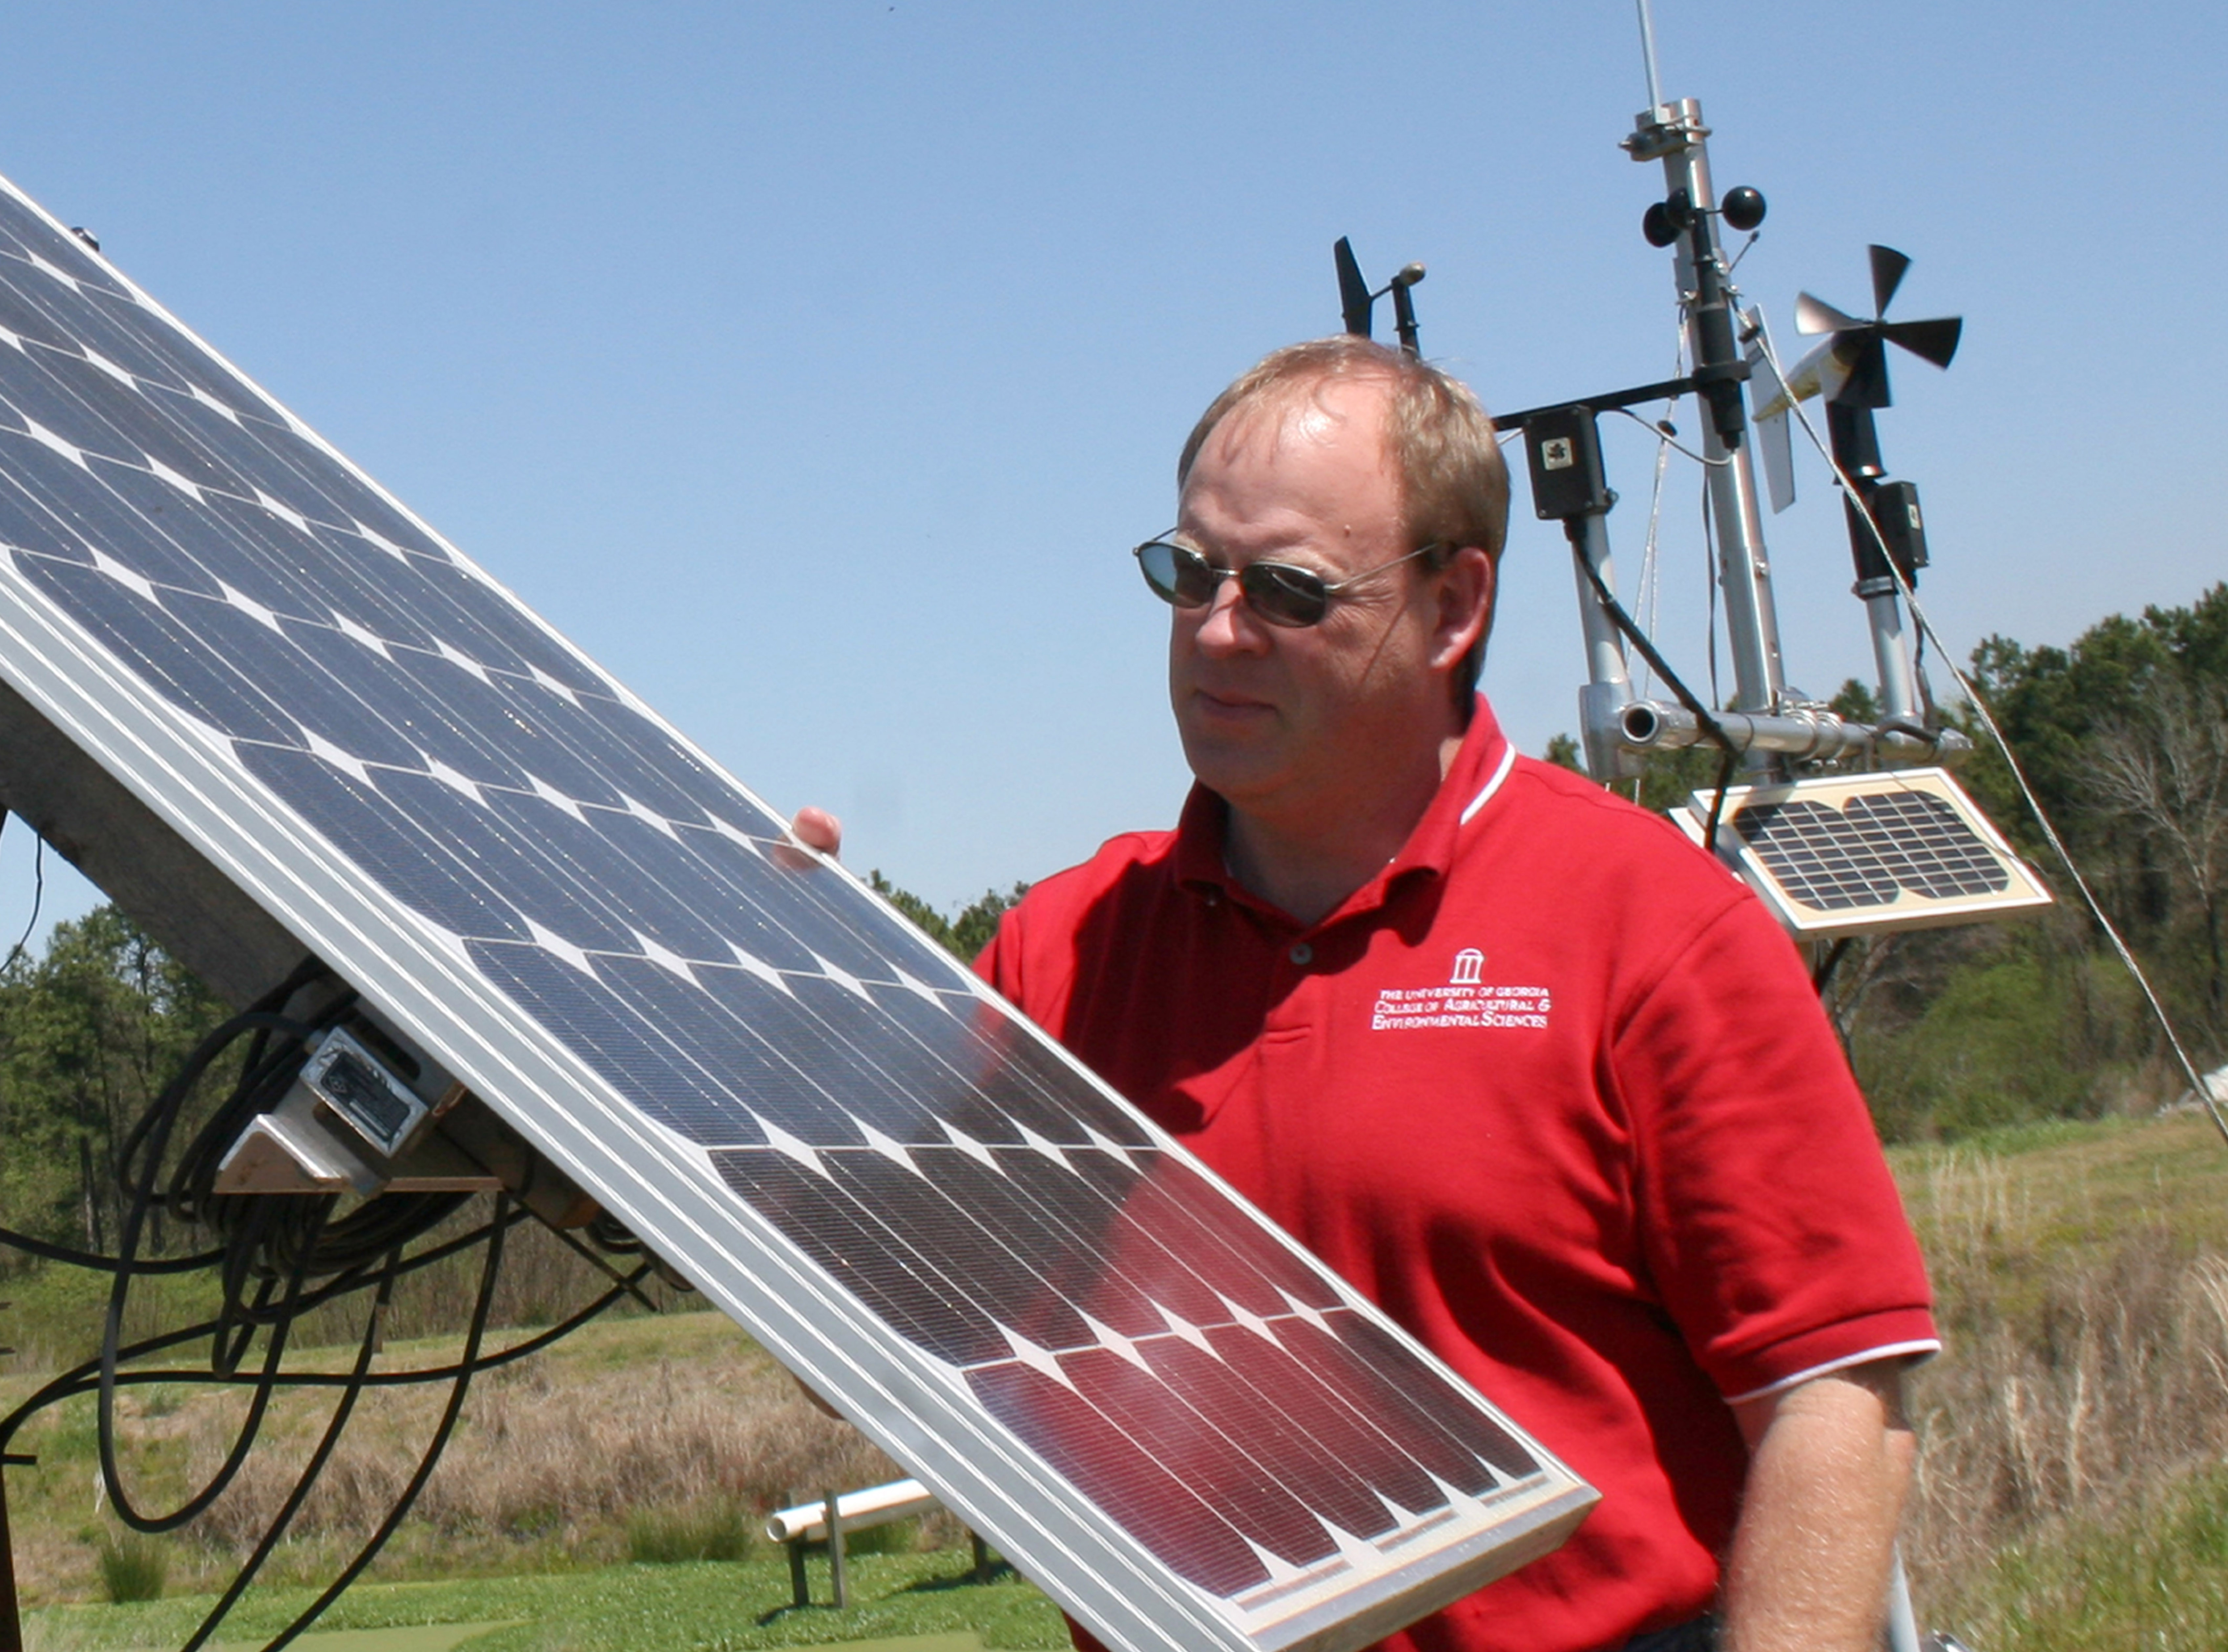 University of Georgia Extension water resource specialist Gary Hawkins looks over a solar panel.